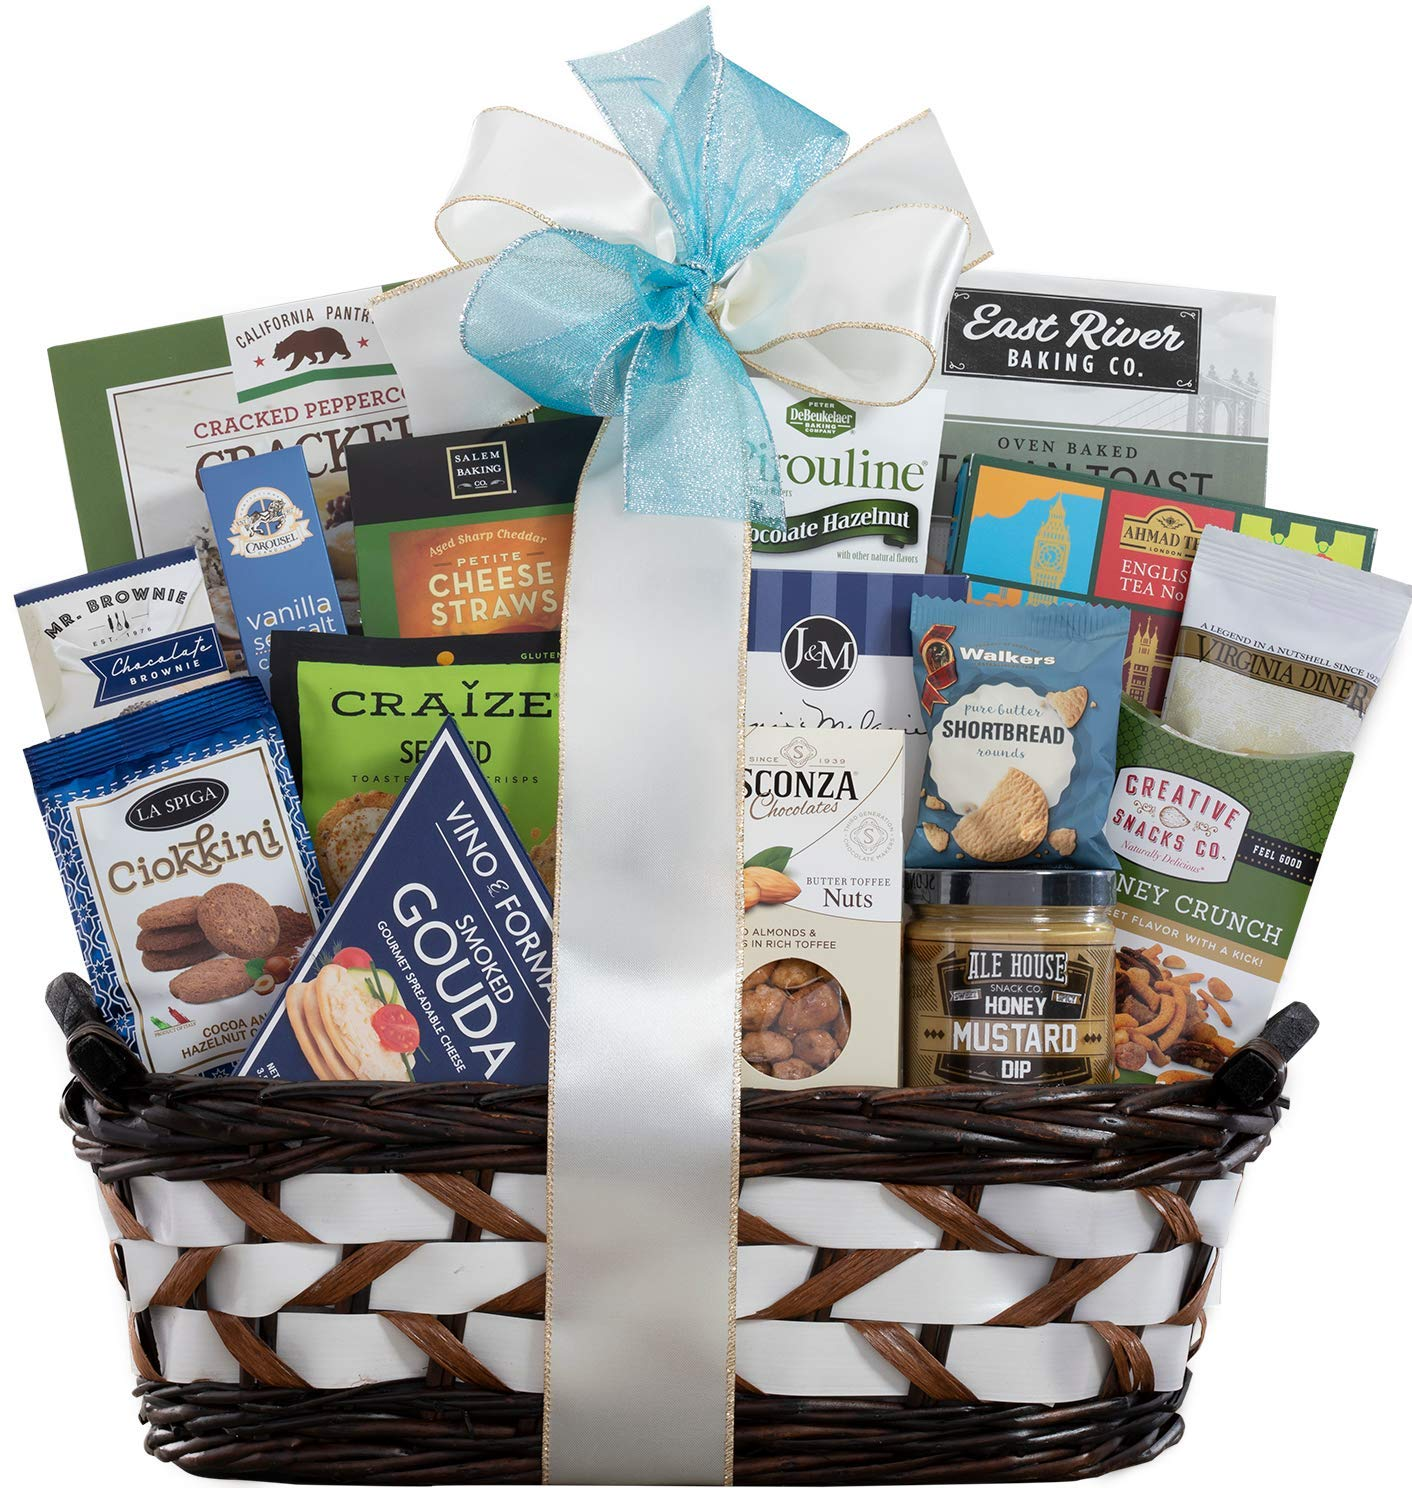 Wine Country Gift Baskets Gift Baskets Prime Basket The Connoisseur Gourmet Gift